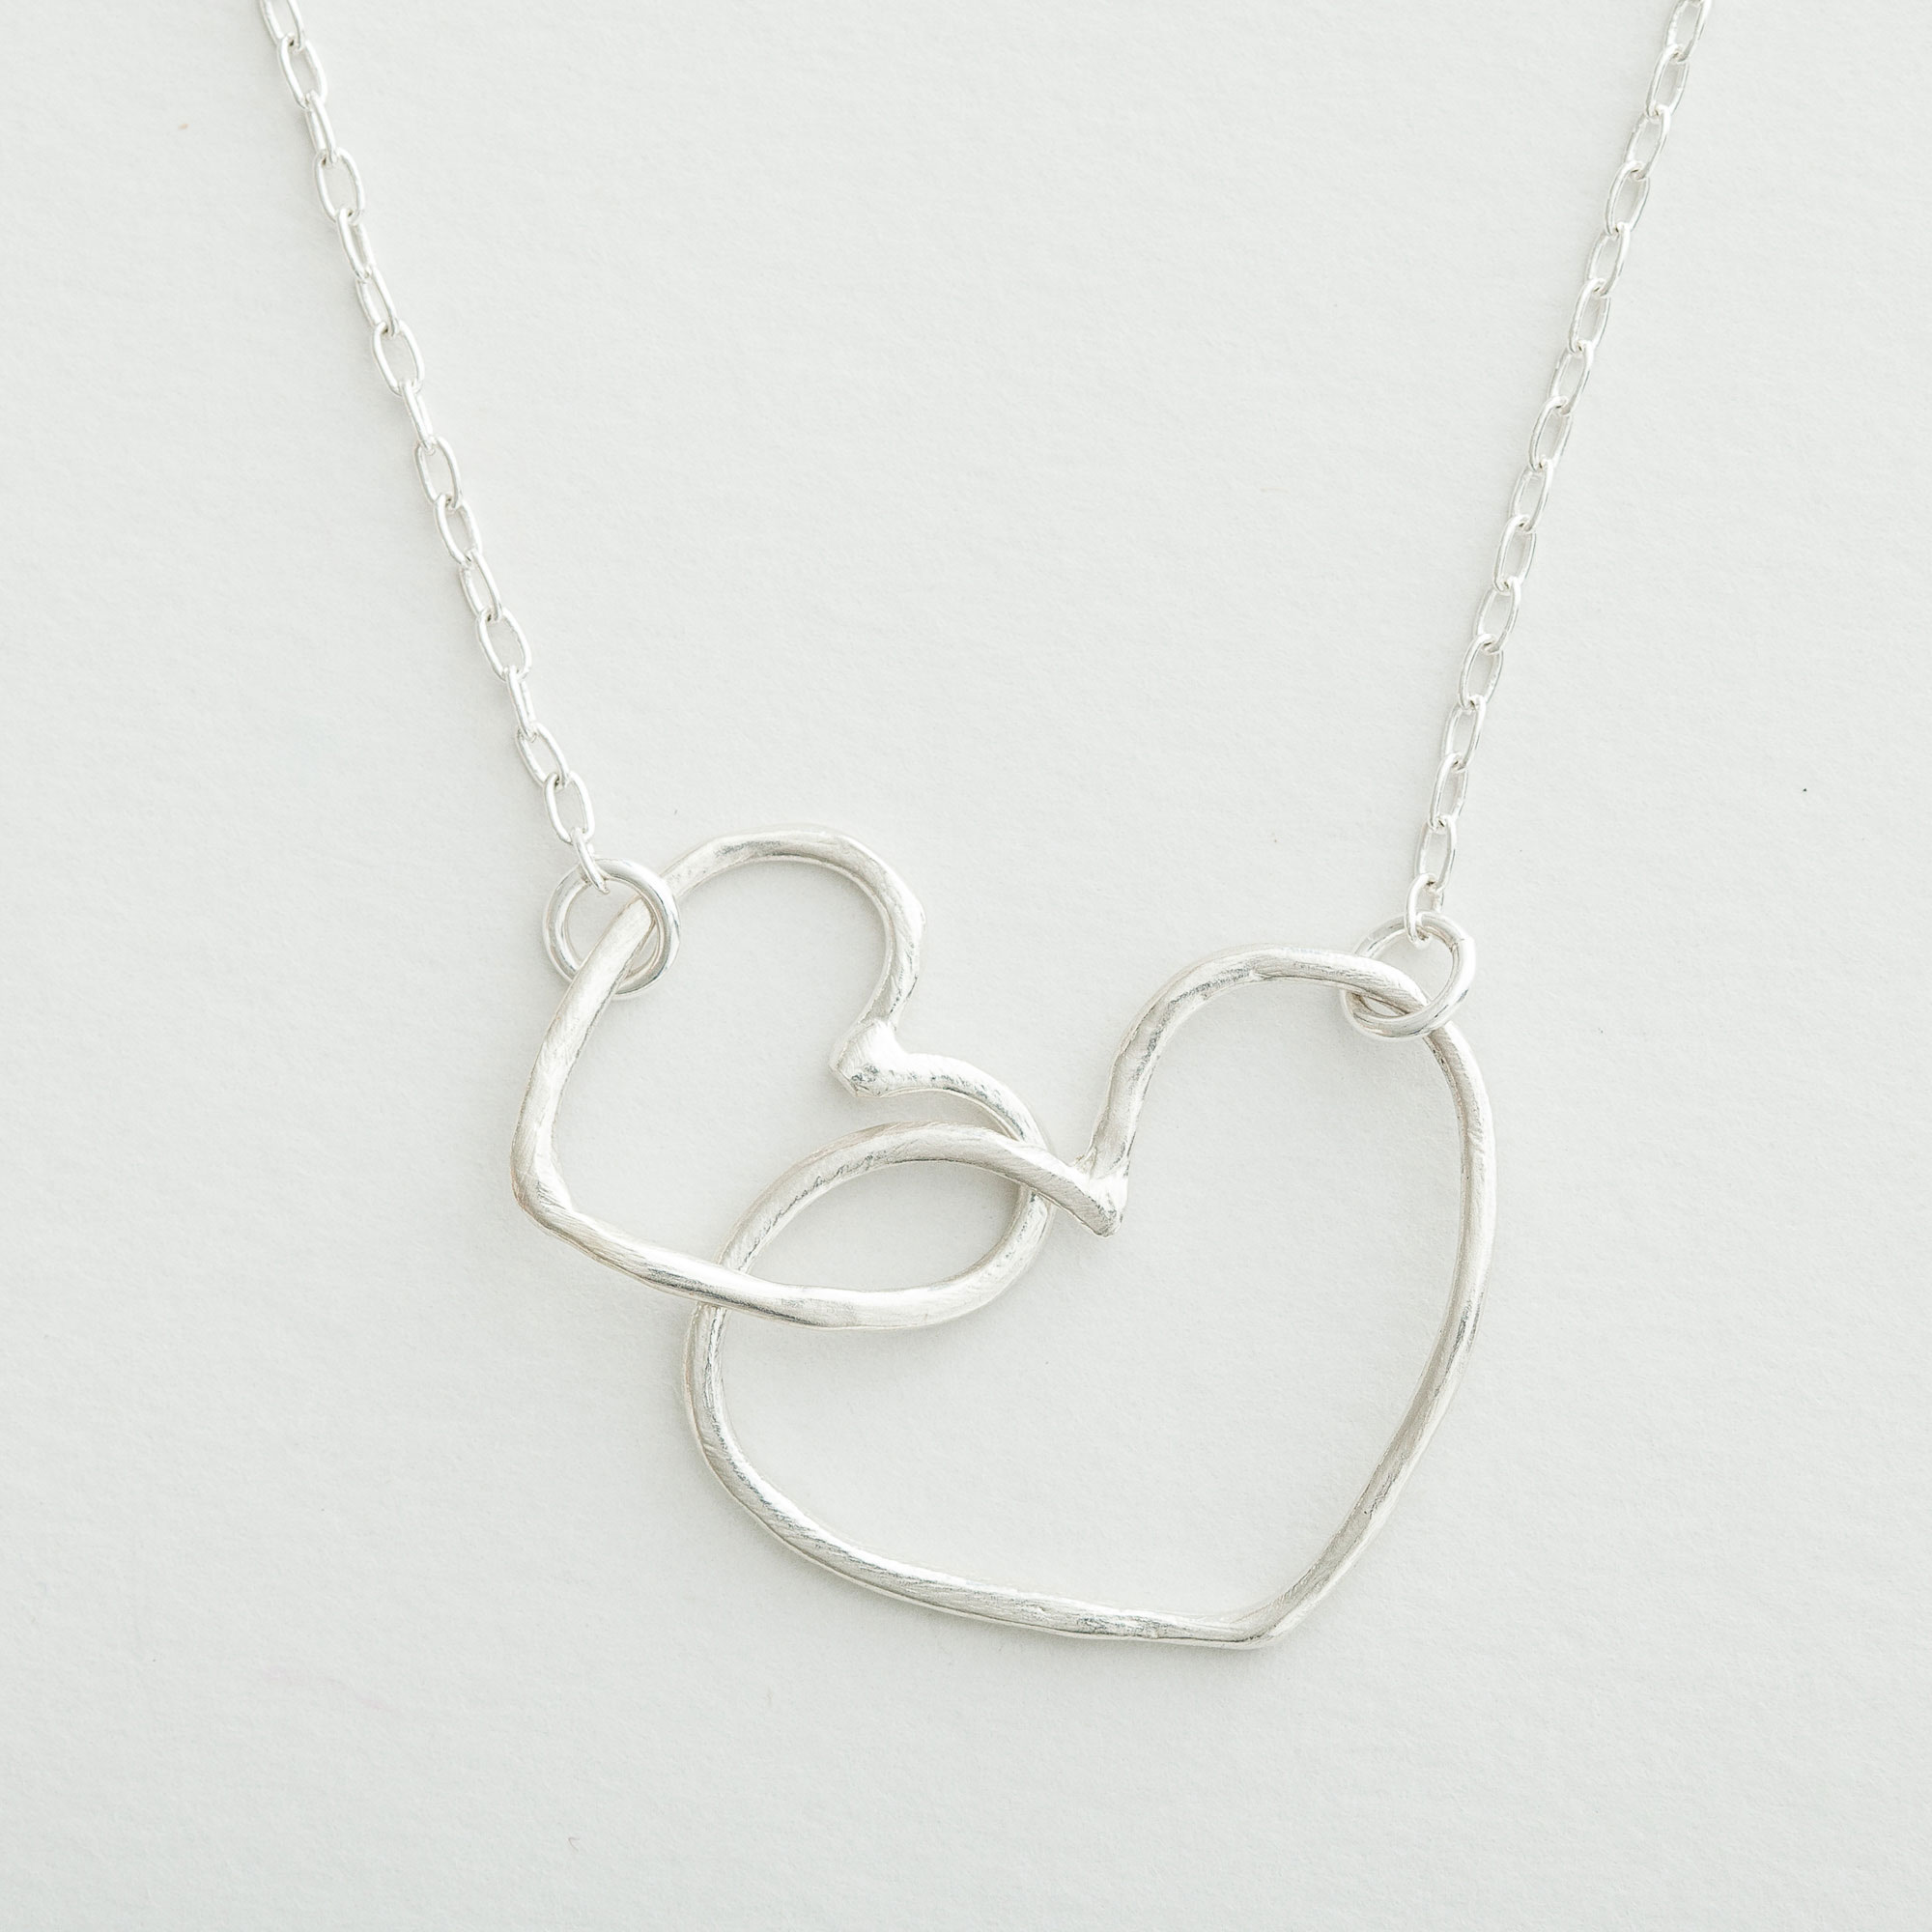 Lisa Leonard - Silver Connected Hearts Necklace